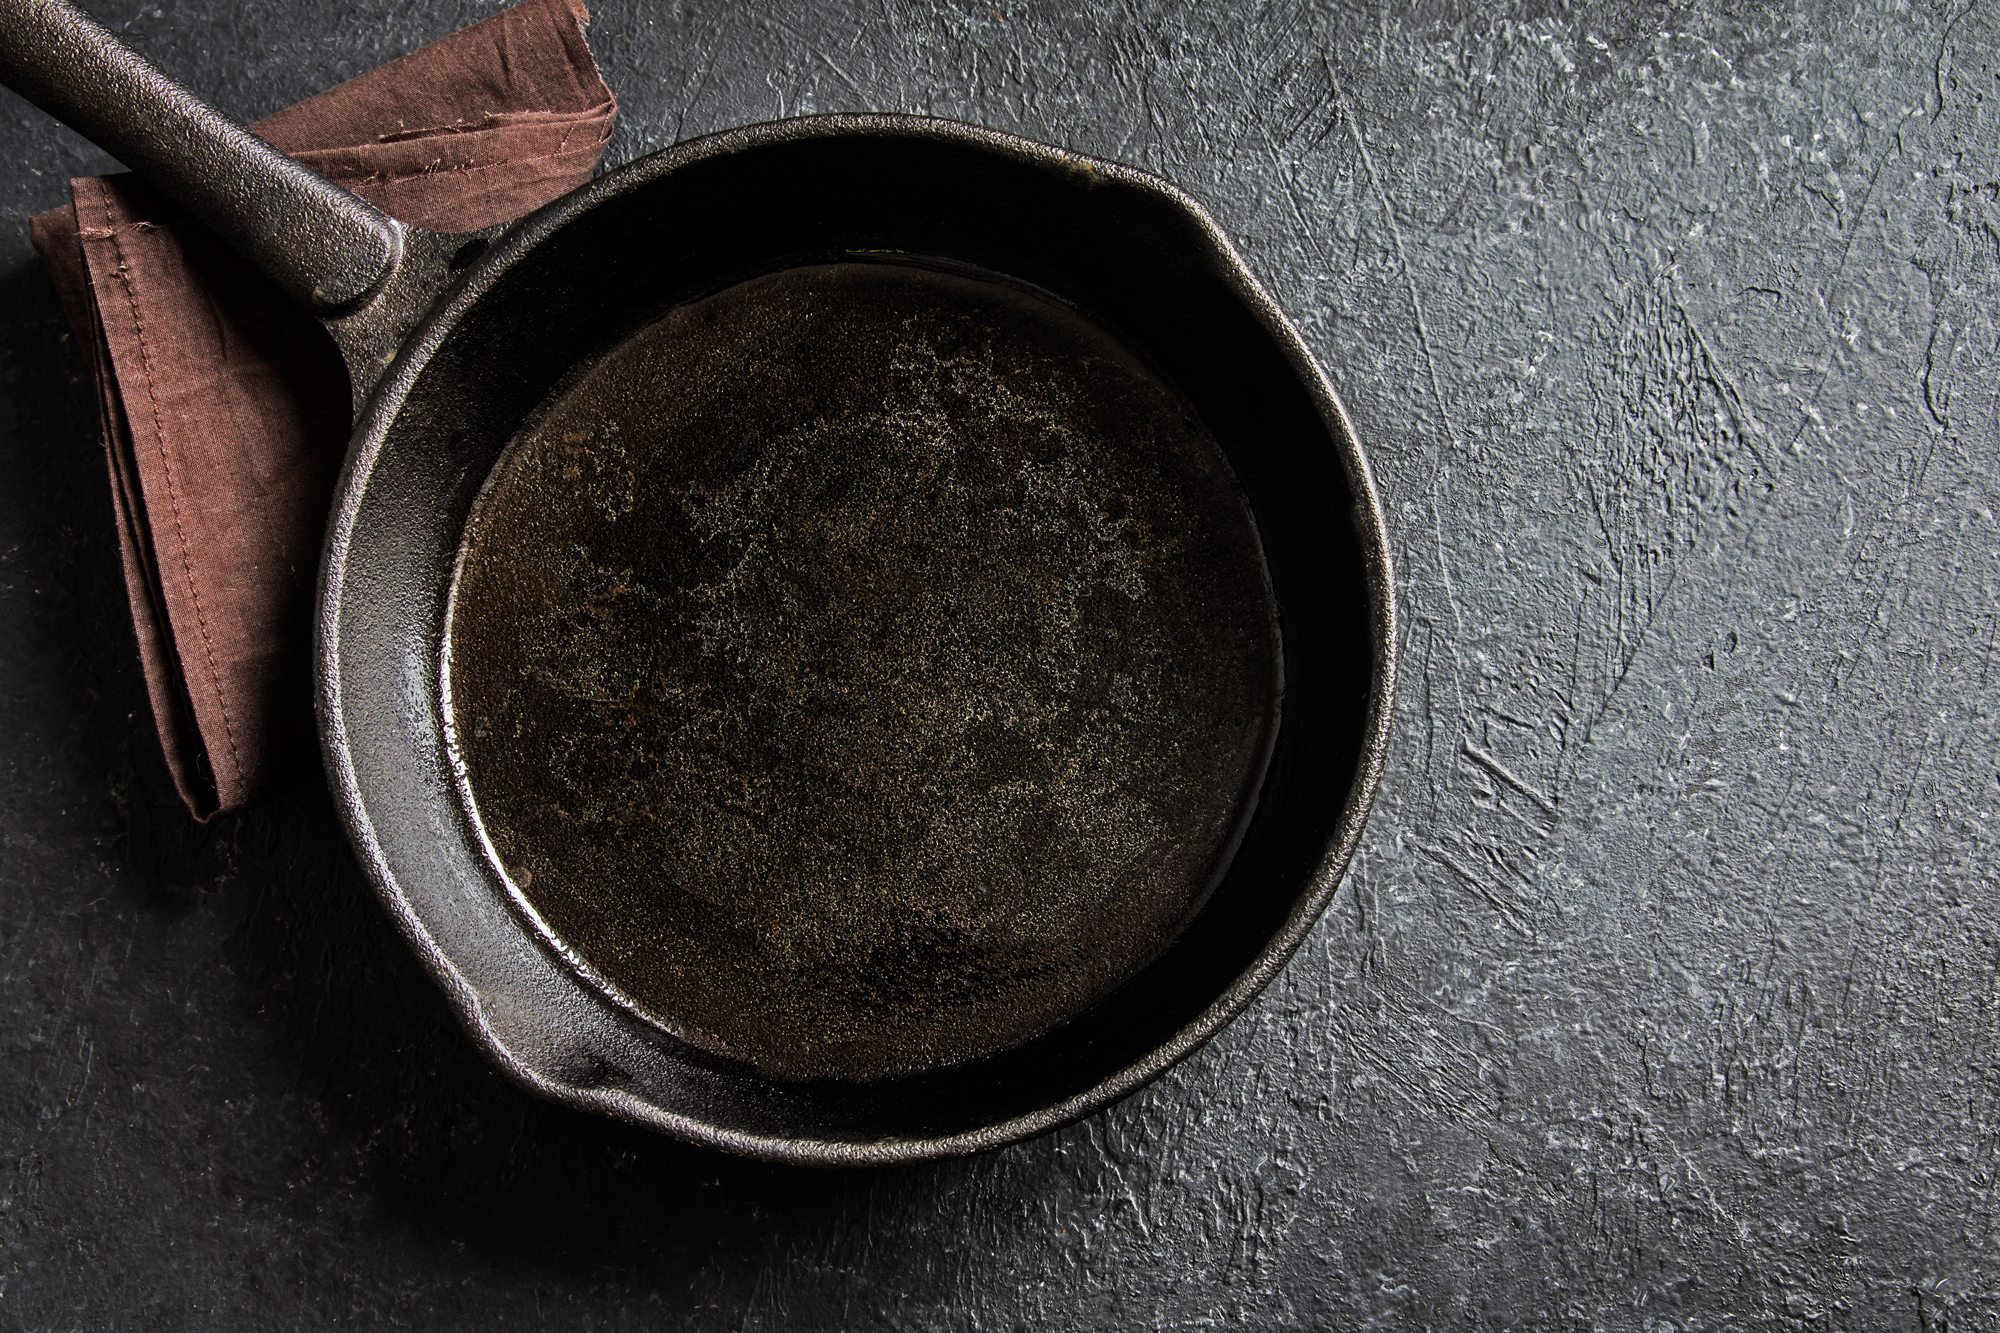 The Best Way to Clean Your Cast Iron Pans, According to an Expert